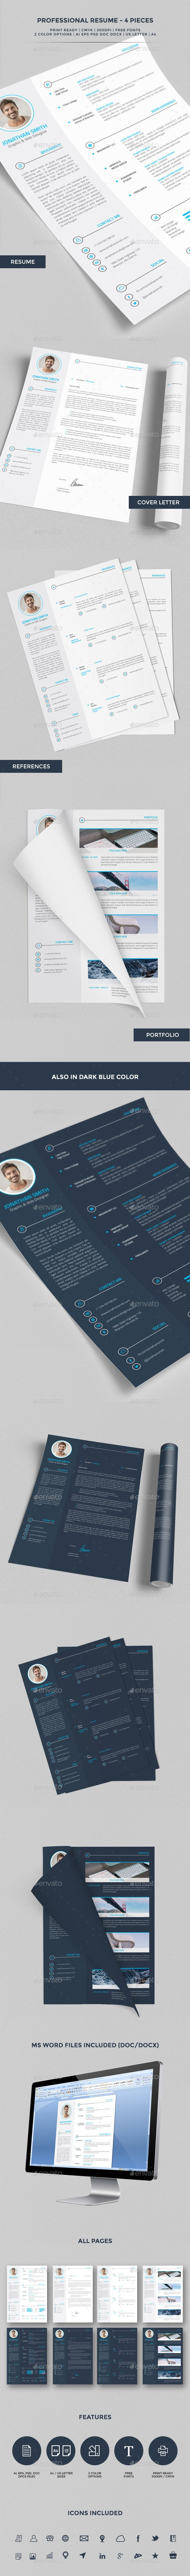 Professional Resume / CV - 4 Pieces - Resumes Stationery